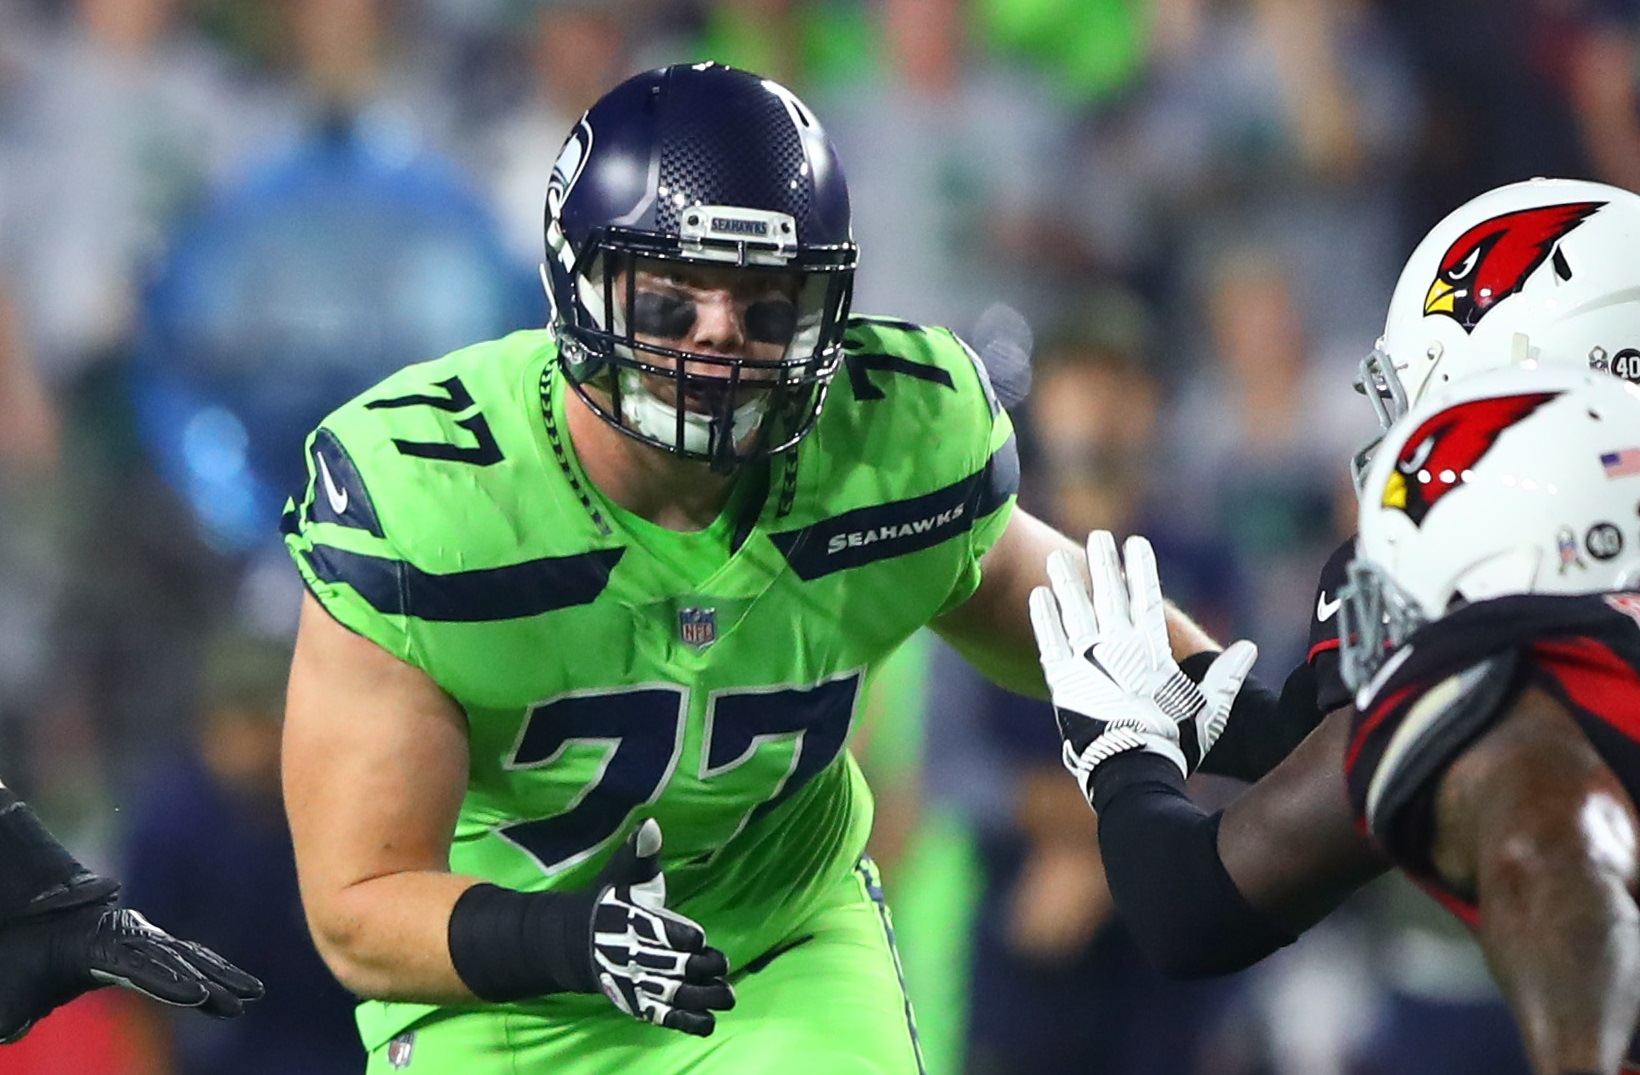 Seahawks Activate OL Ethan Pocic, Place RB Rashaad Penny on Injured Reserve